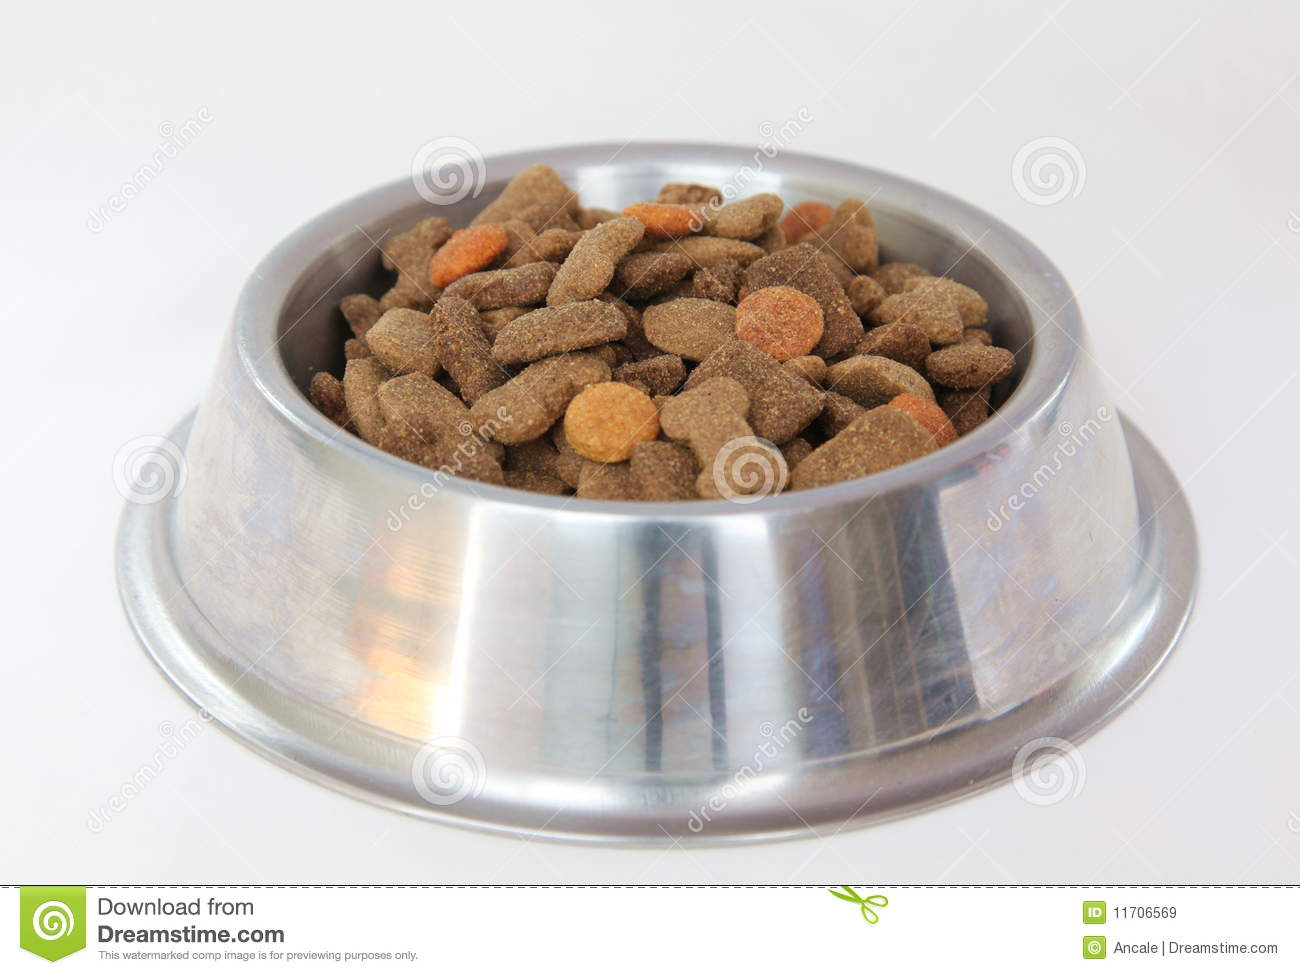 What Is Meat And Bone Meal In Dog Food